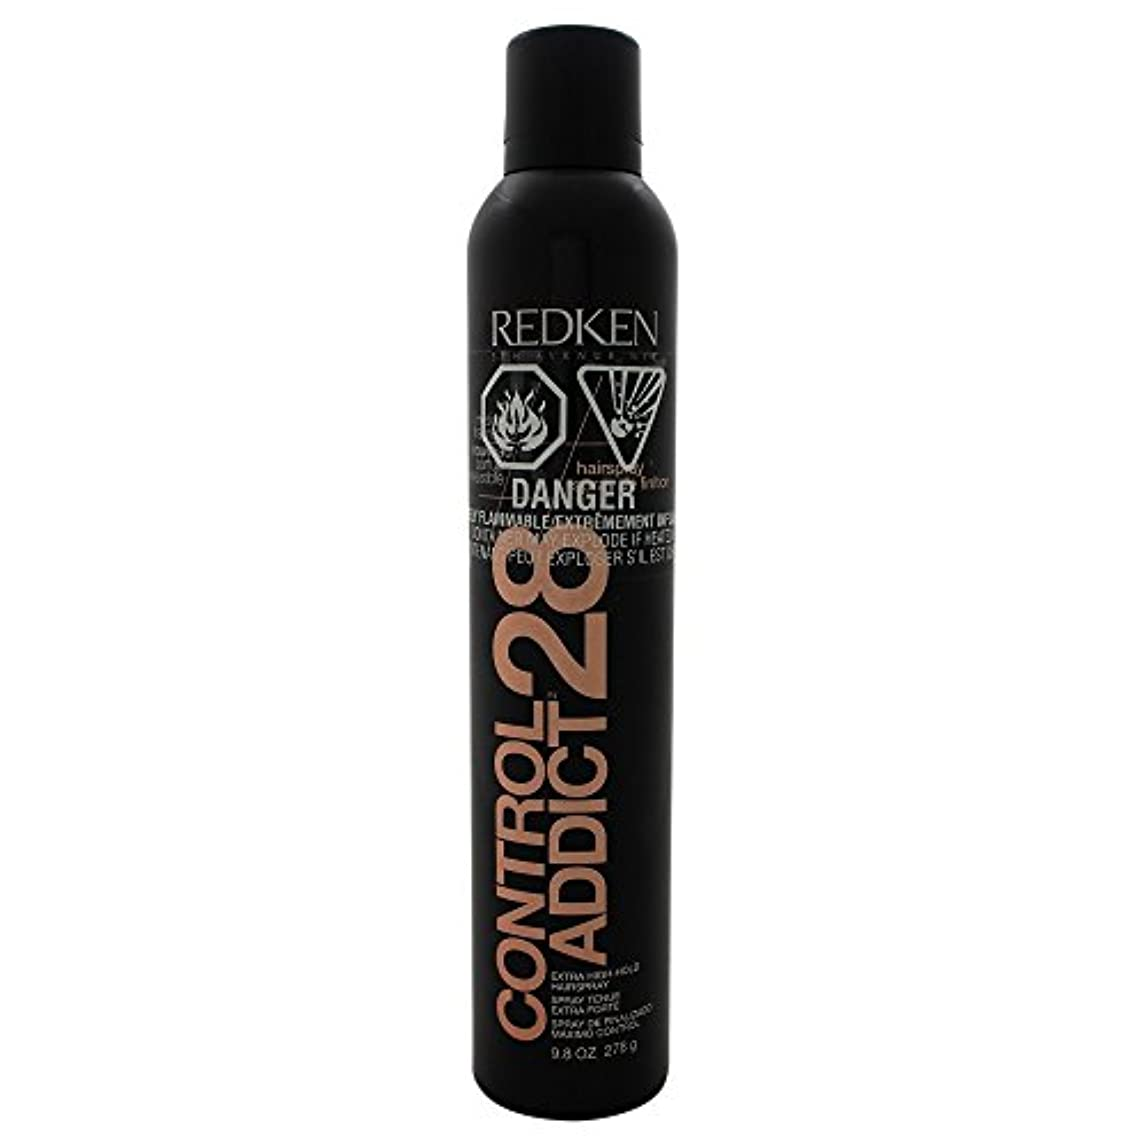 by Redken CONTROL ADDICT 28 EXTRA-HIGH HOLD HAIR SPRAY 9.8 OZ(BLACK PACKAGING) by REDKEN